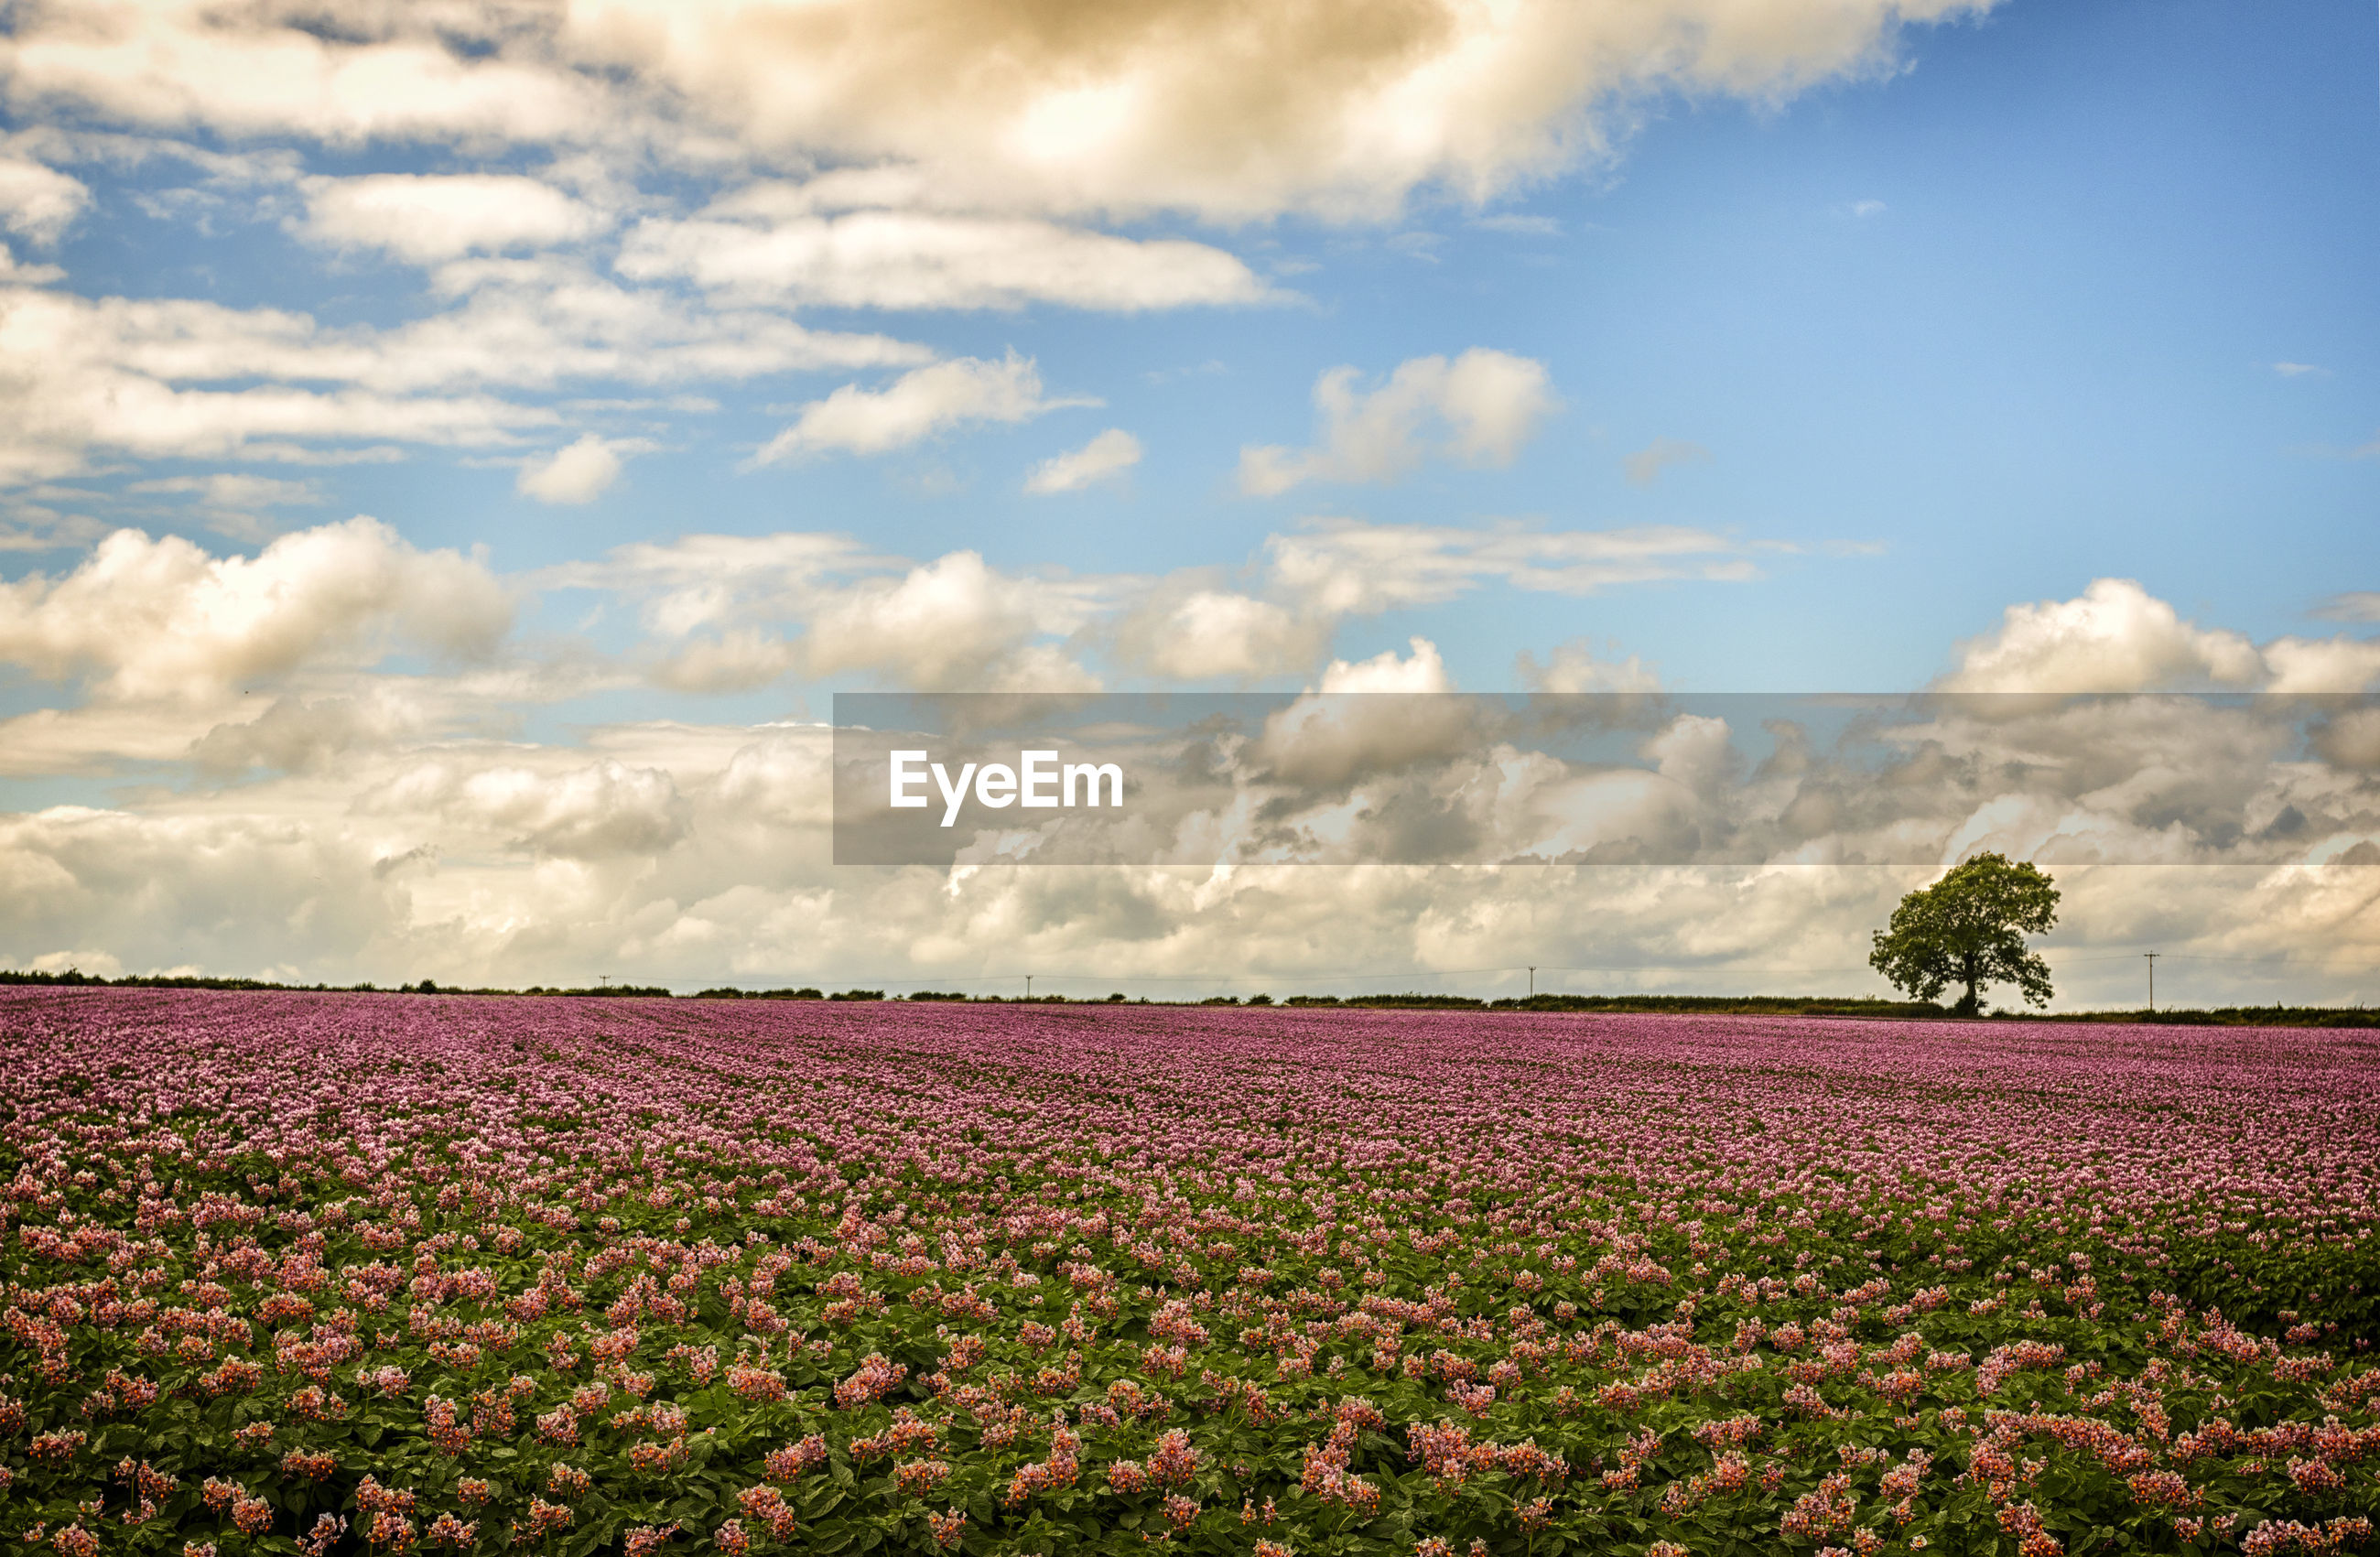 SCENIC VIEW OF FLOWERS GROWING IN FIELD AGAINST SKY